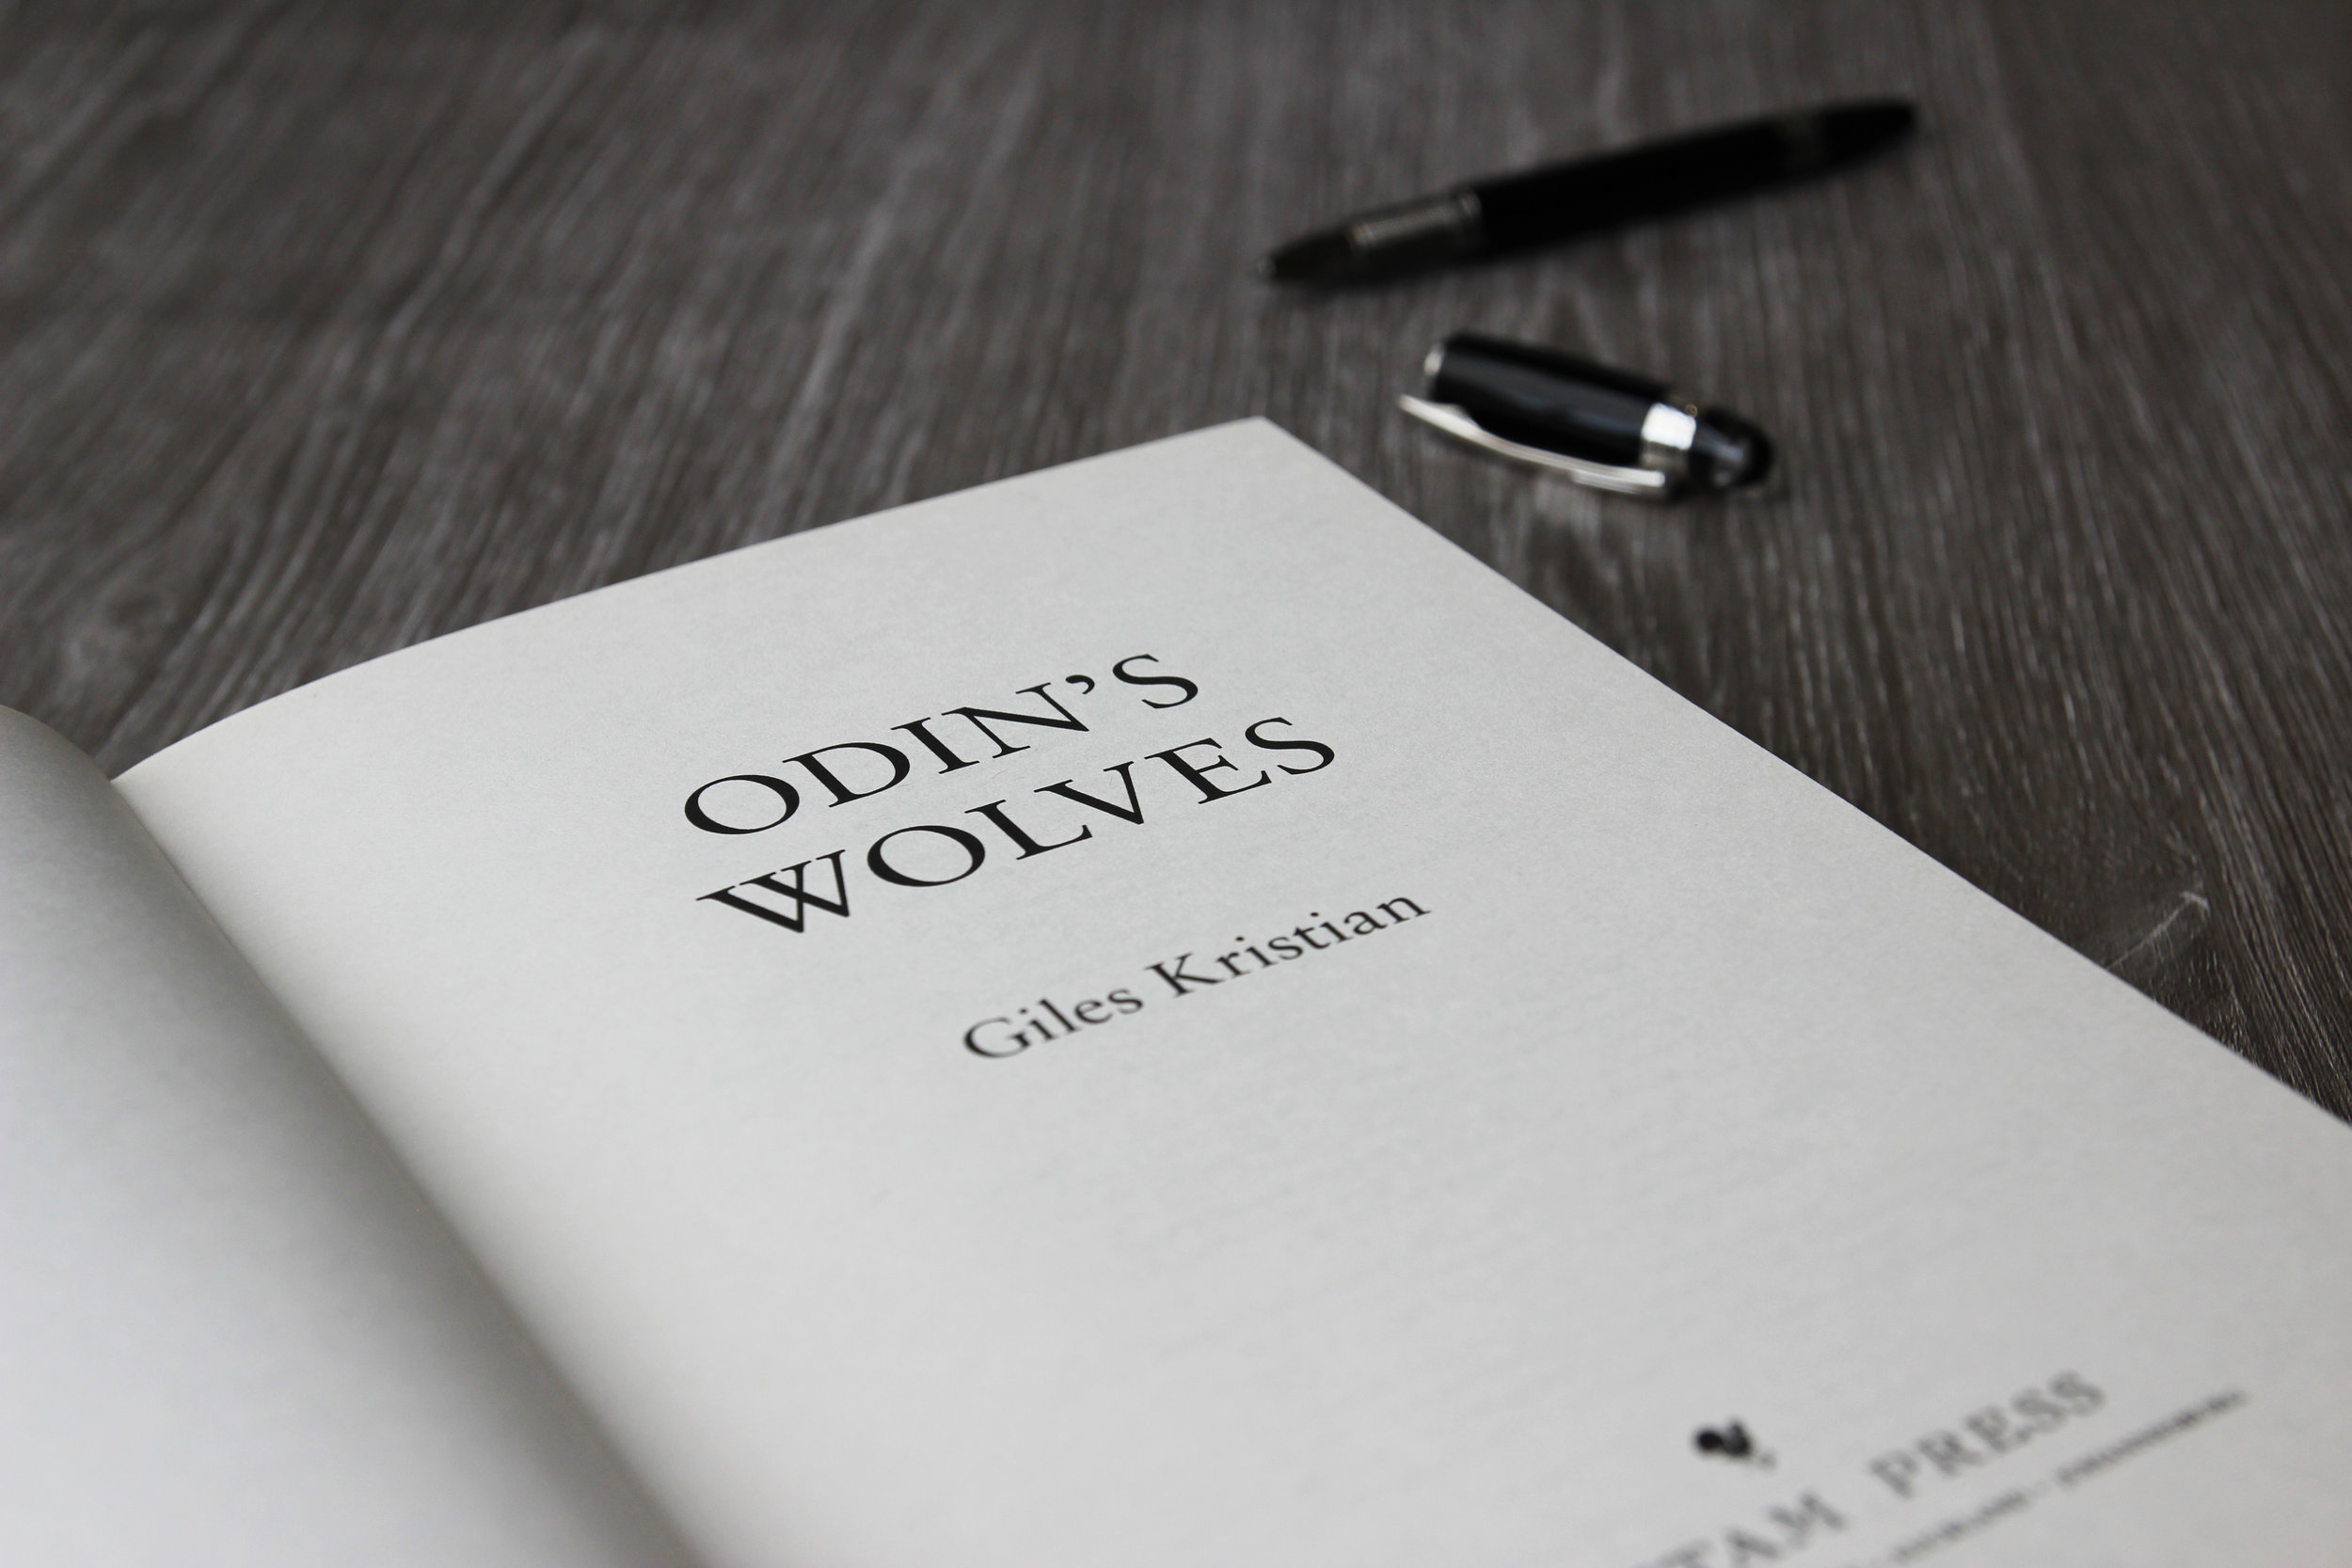 Signed copy of Odin's Wolves by Giles Kristian